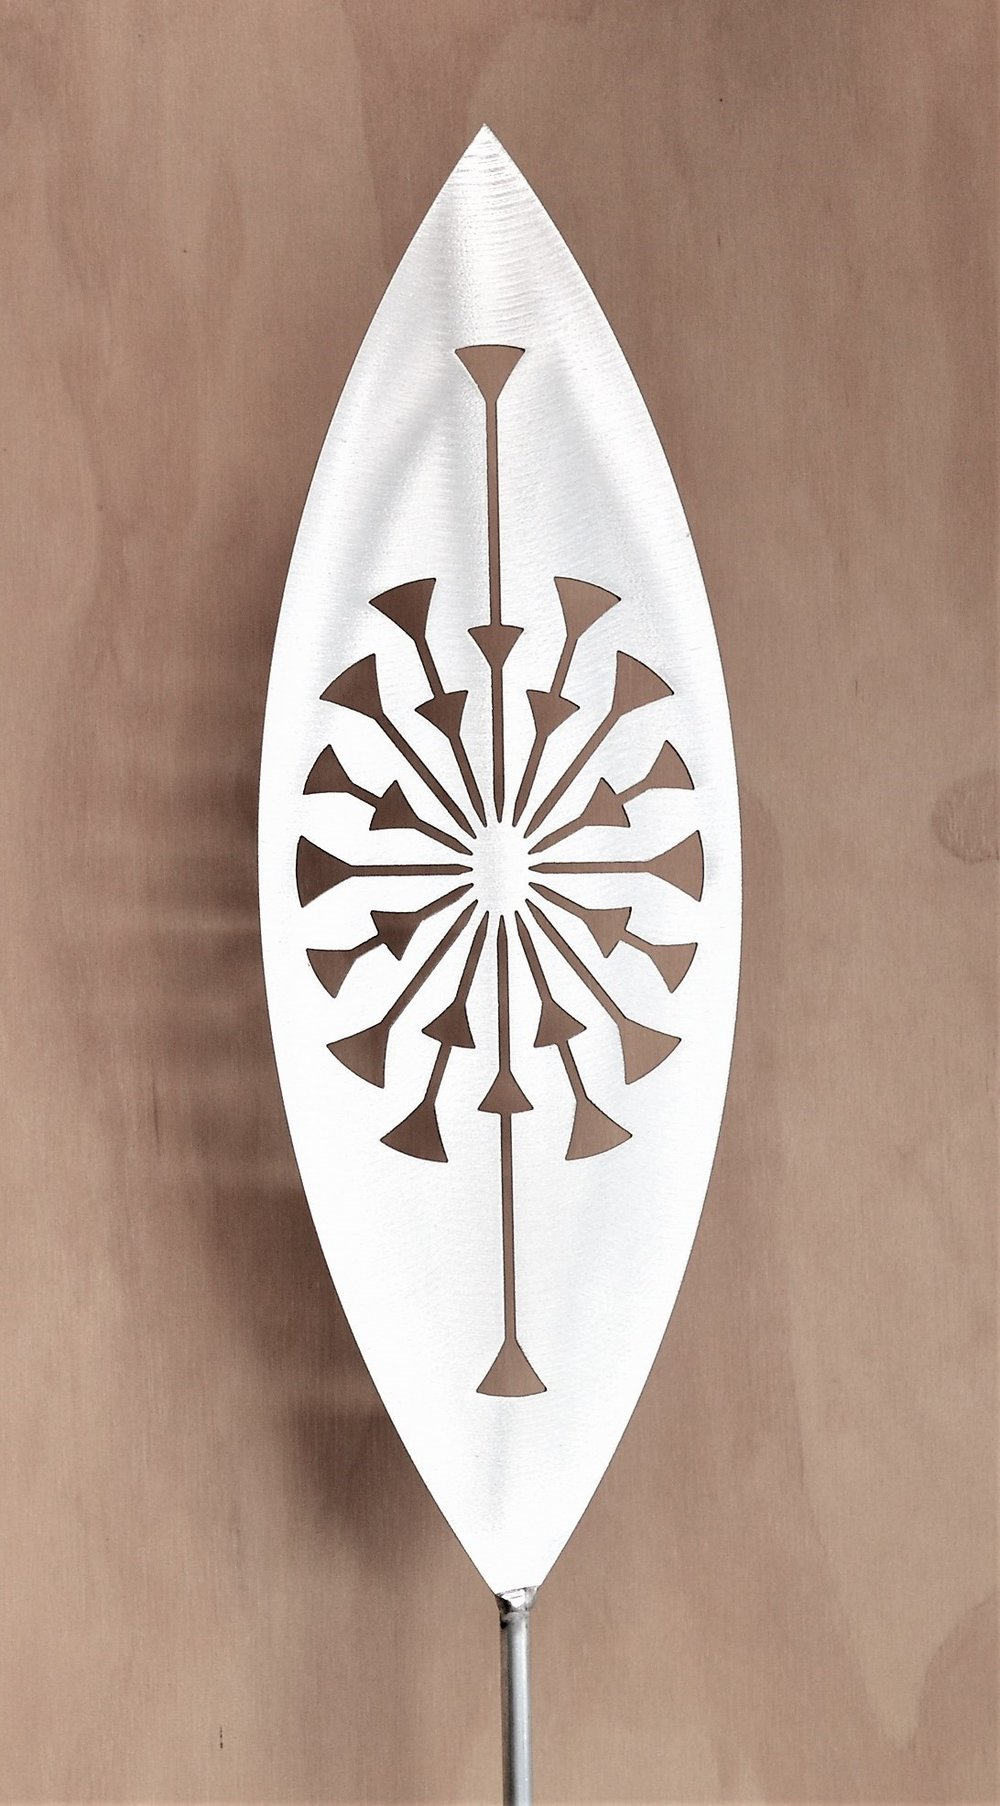 'Rise and Shine' Tohu  Grounded Art NZ, aluminium, 1650mm tall (400mm spear head on a 1250mm rod)  $90.00